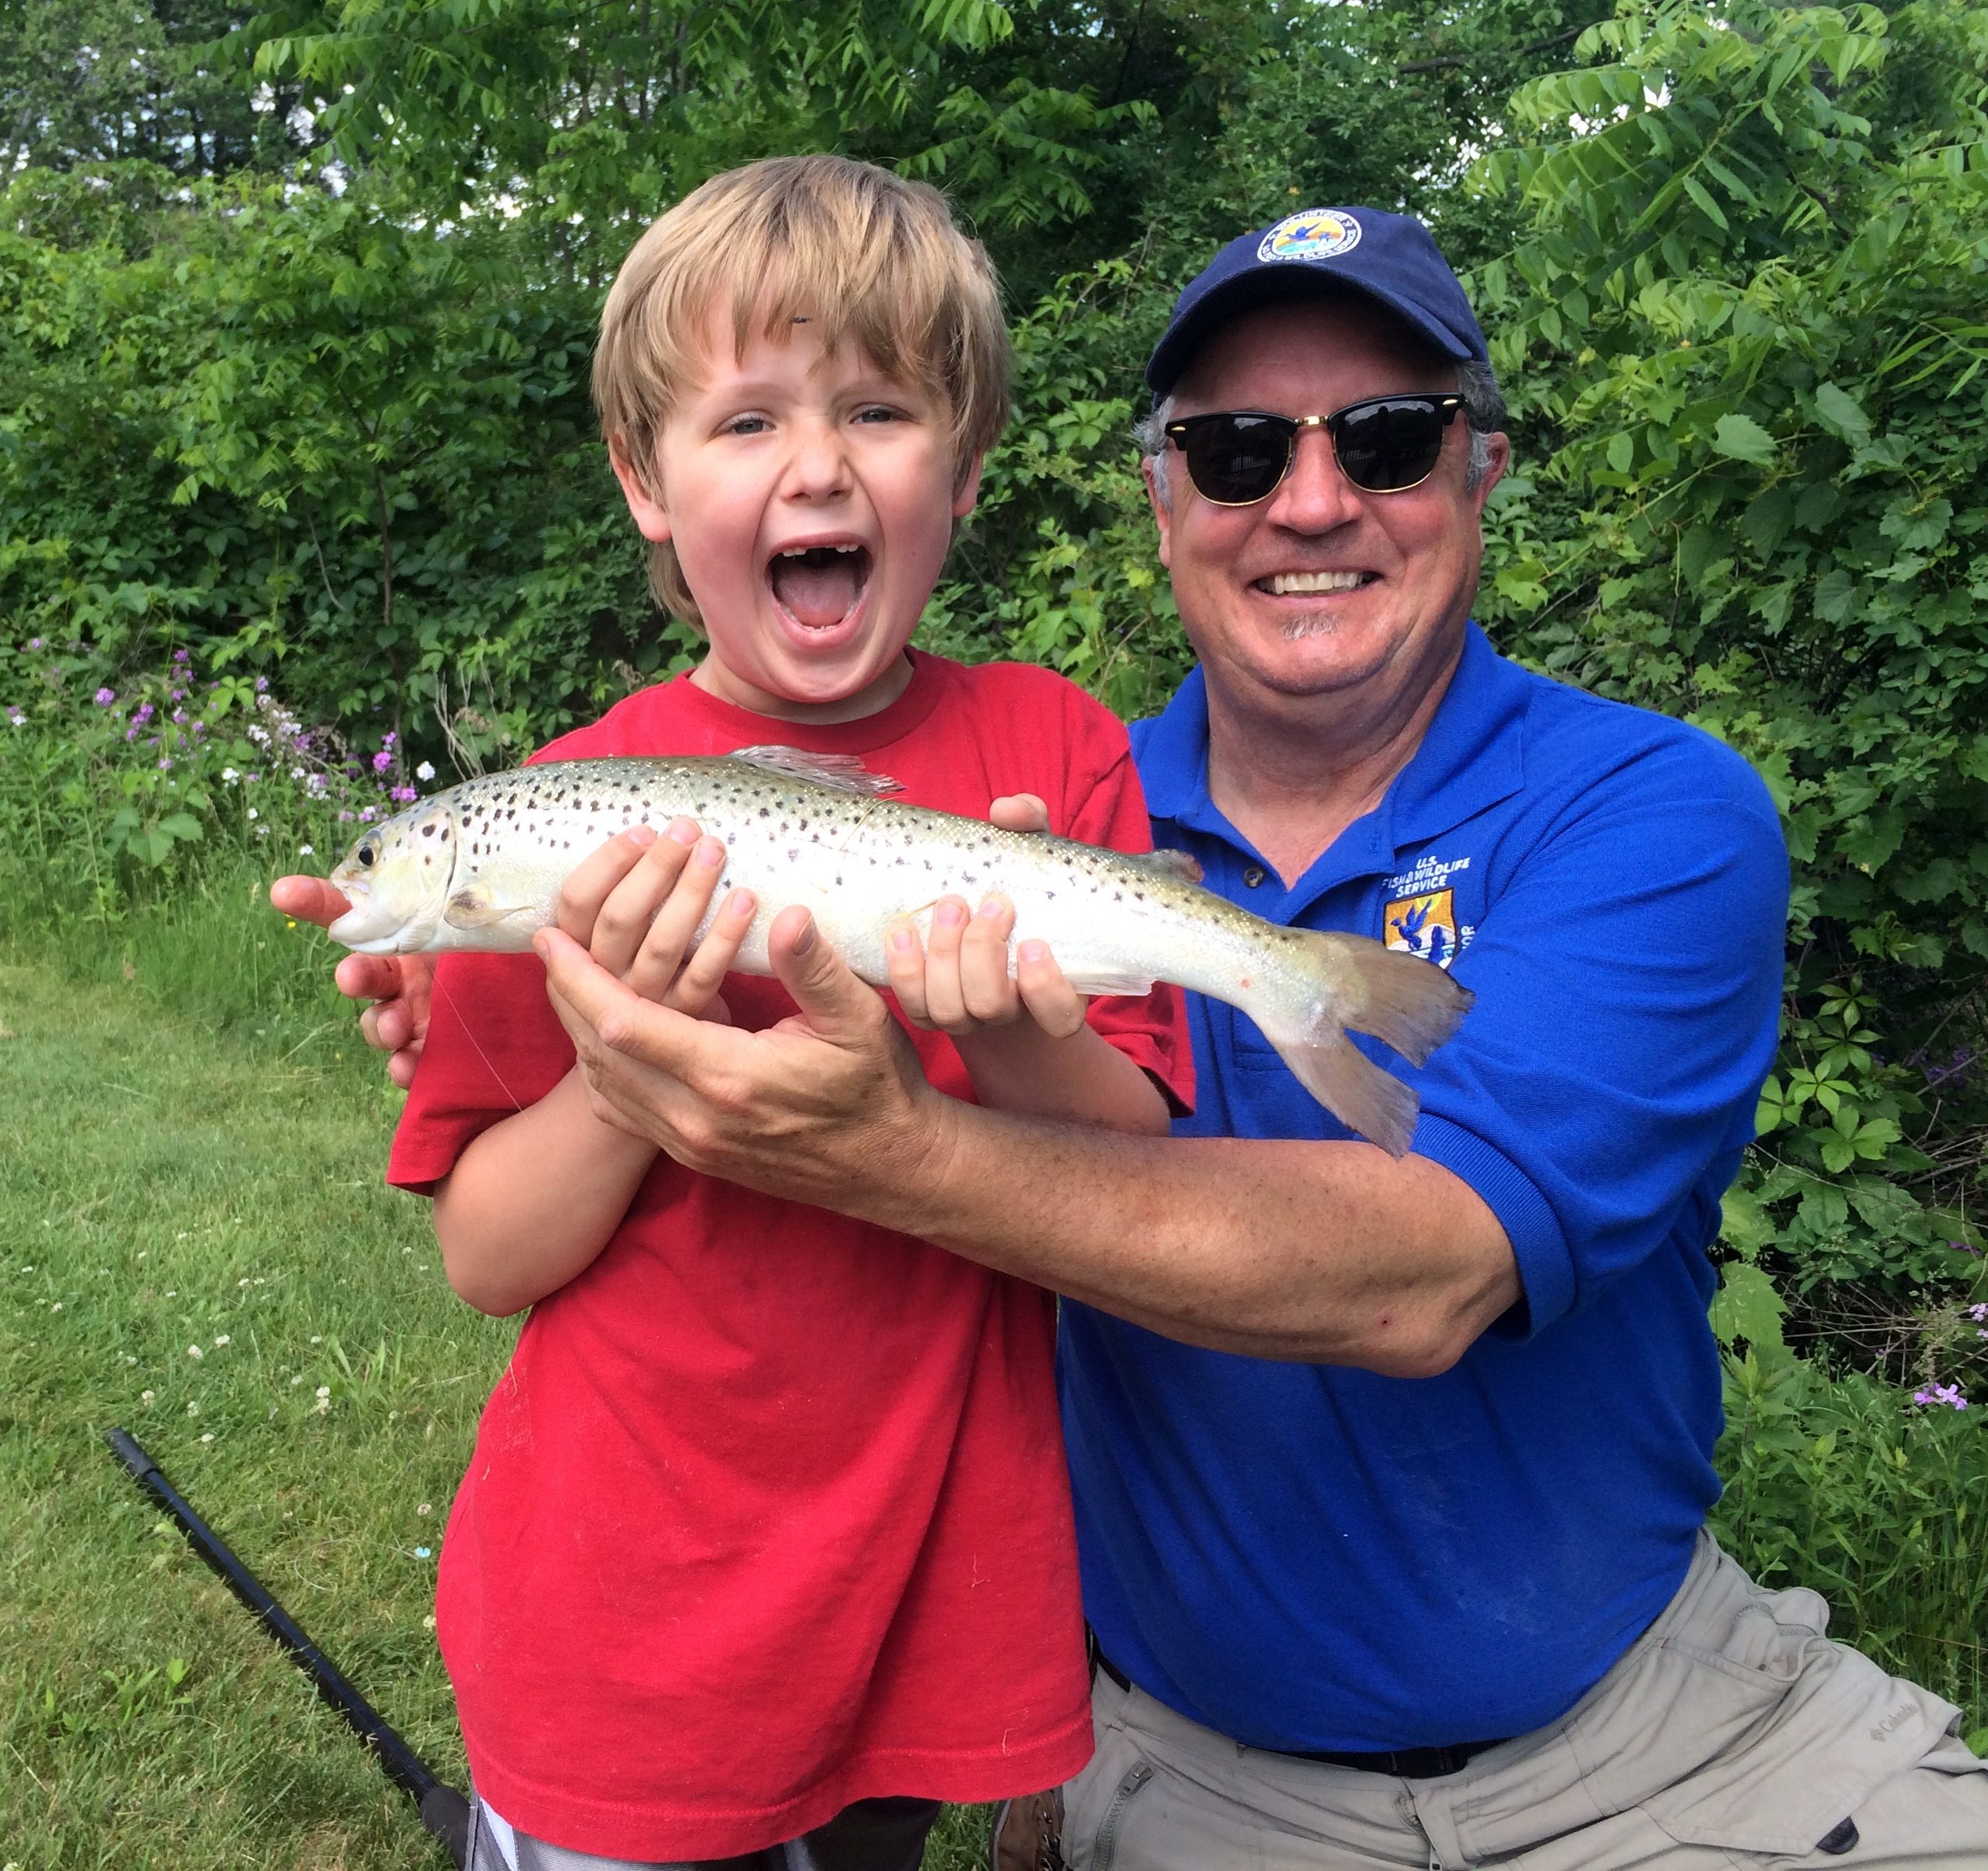 An excited young angler shows off his prize catch with Dr. Mike Millard at the Northeast Fishery Center Kid's Fishing Day. Photo credit:USFWS